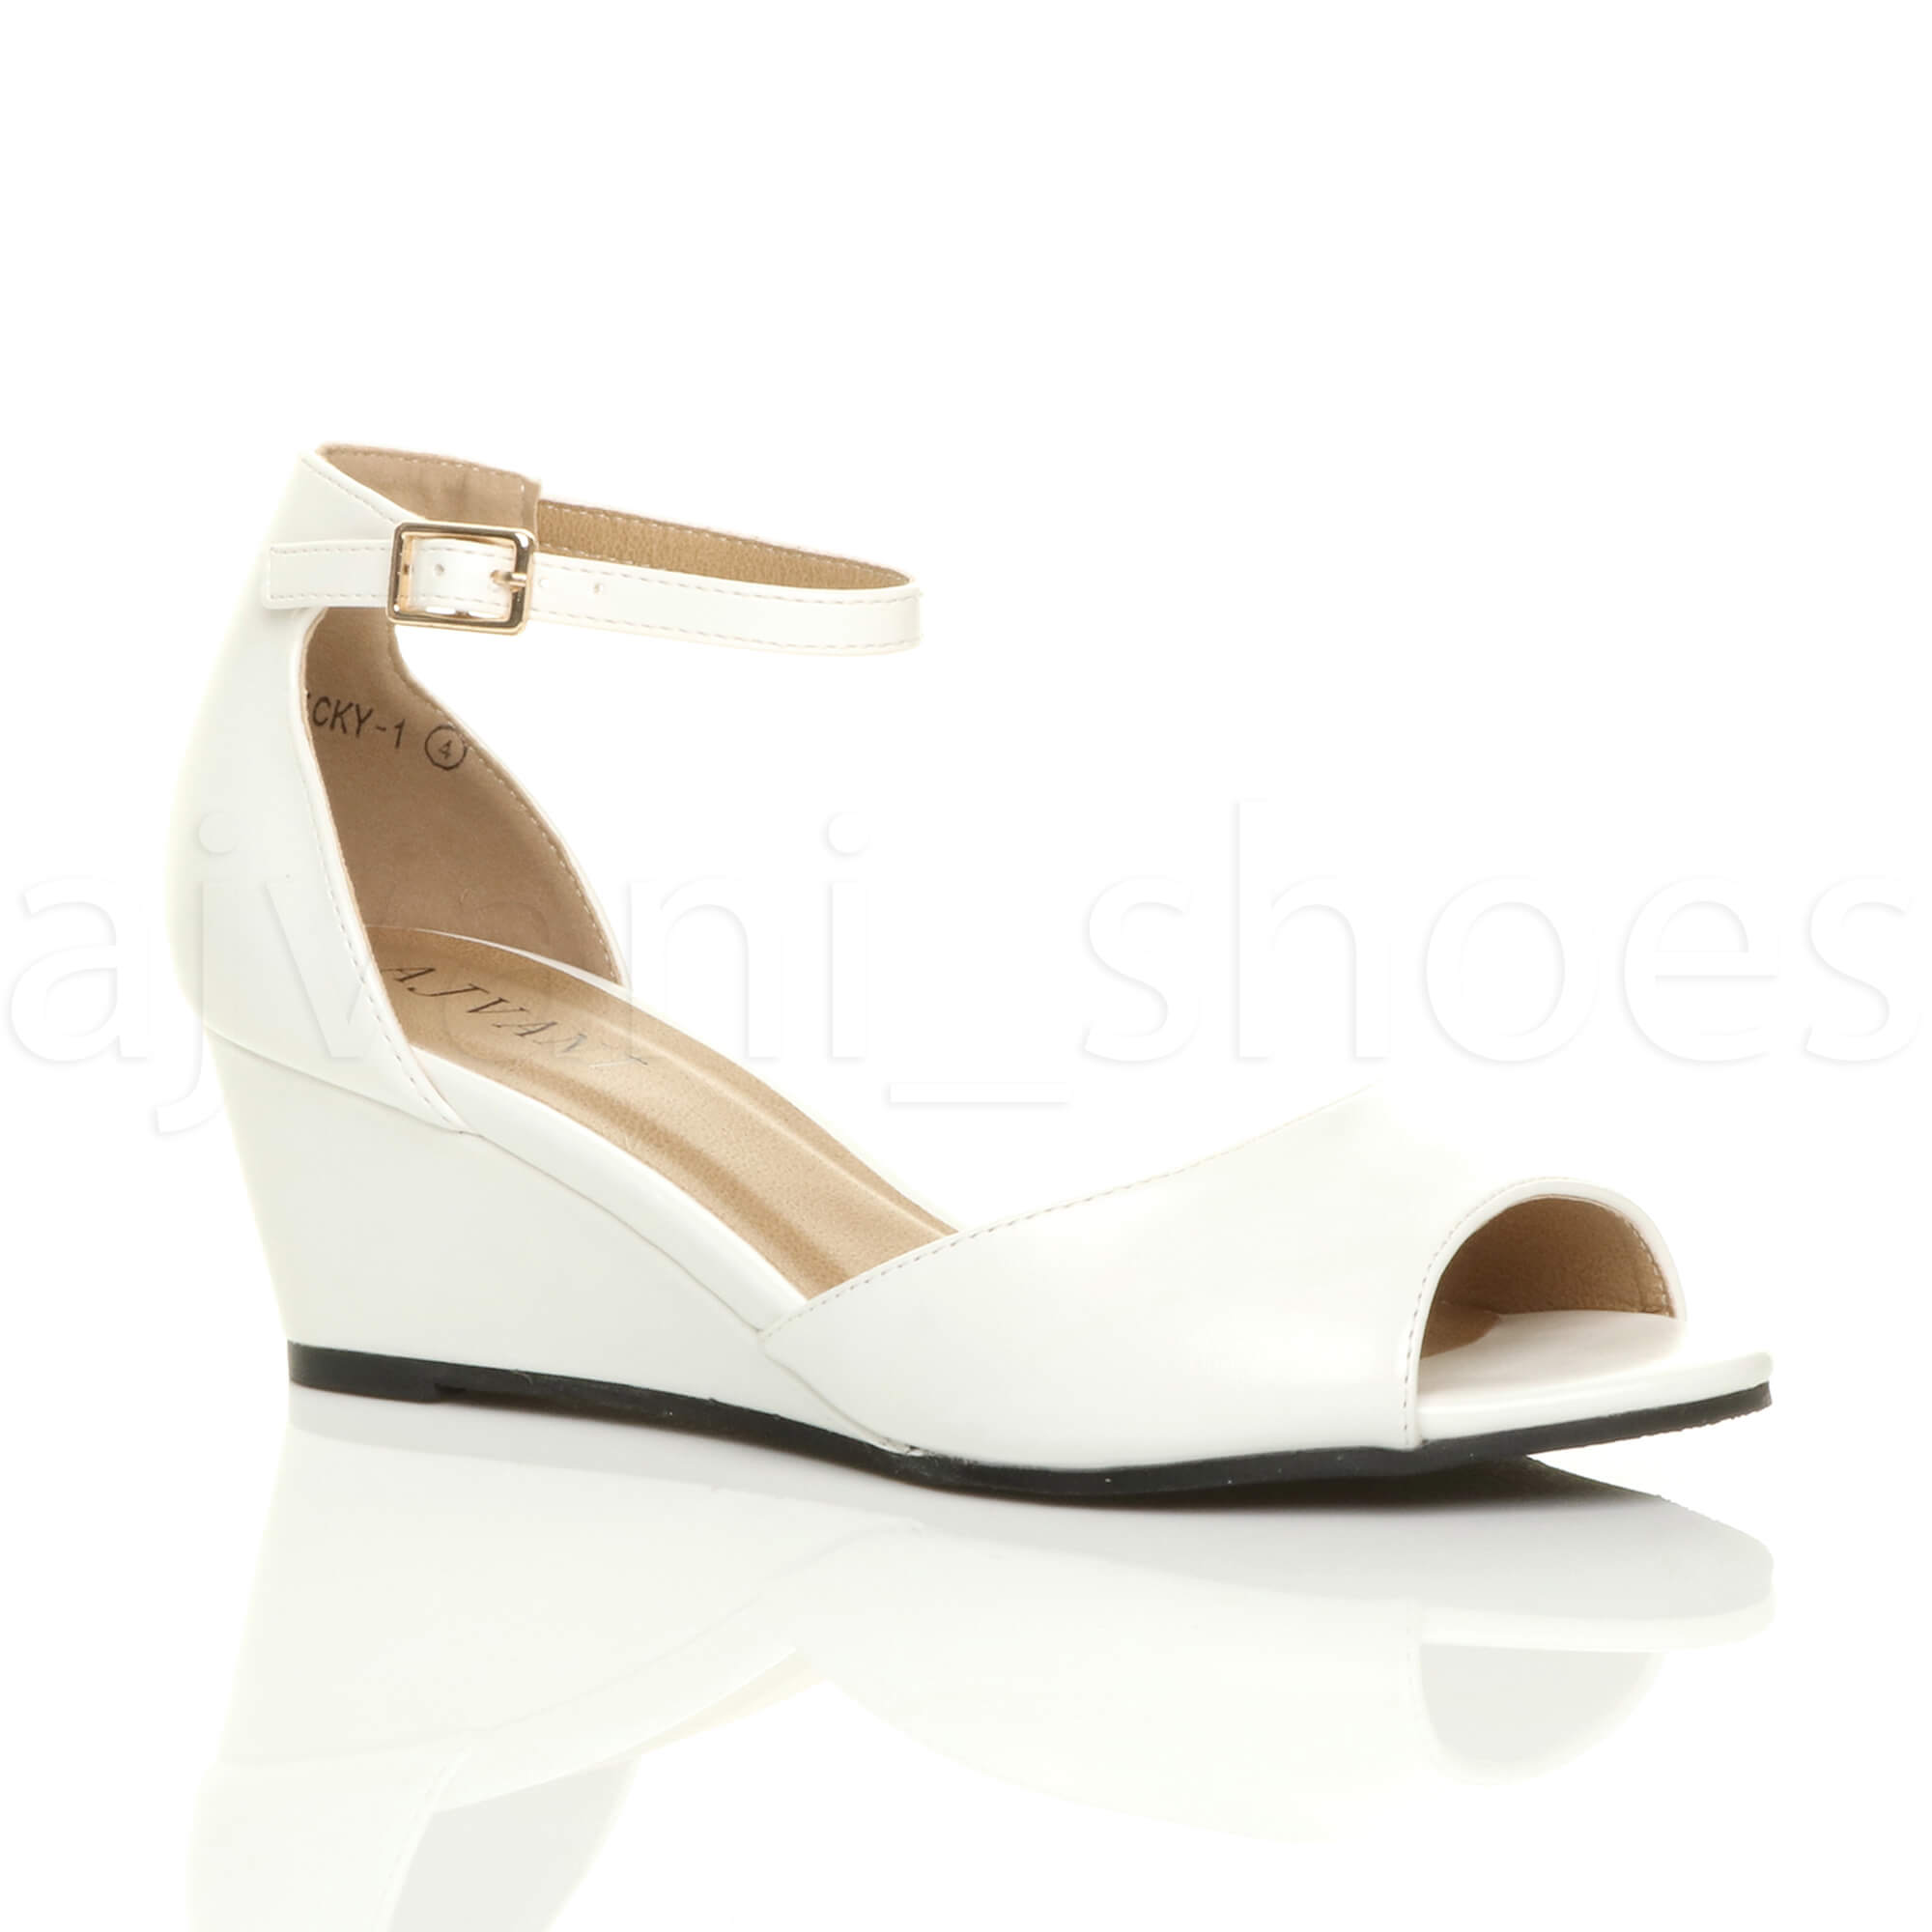 WOMENS-LADIES-LOW-MID-WEDGE-HEEL-ANKLE-STRAP-SMART-CASUAL-EVENING-SANDALS-SIZE thumbnail 162